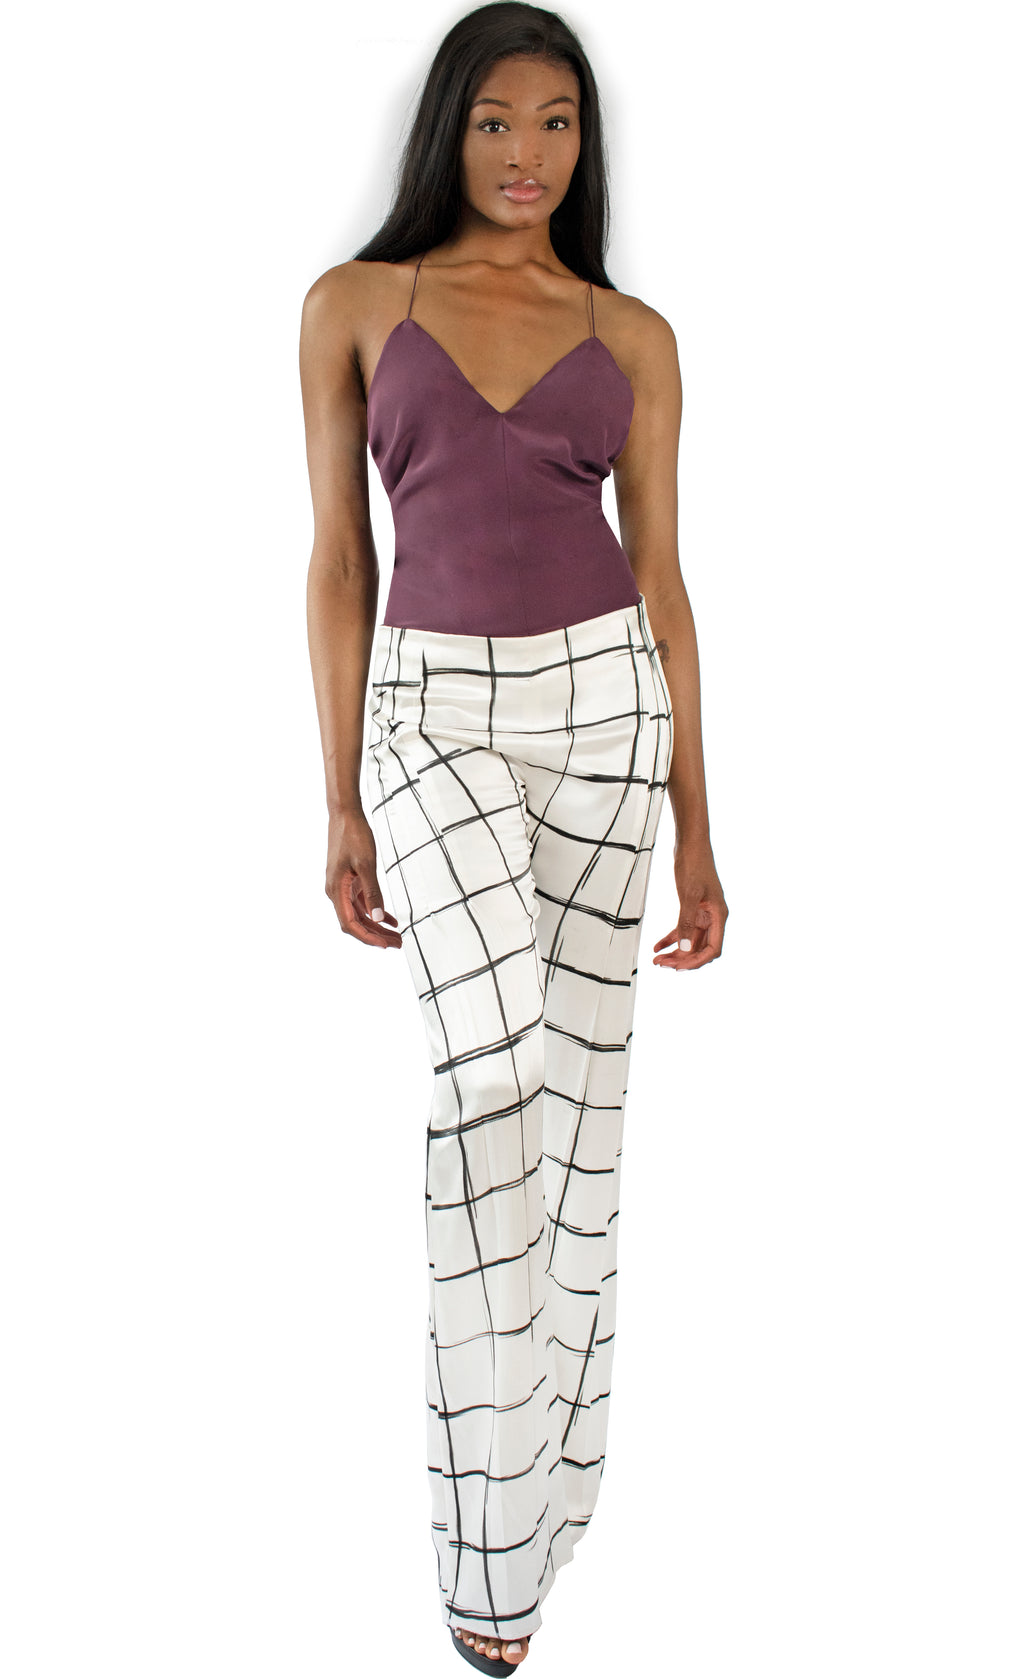 Stella Flared Painted Satin Pant - KxLNewYork